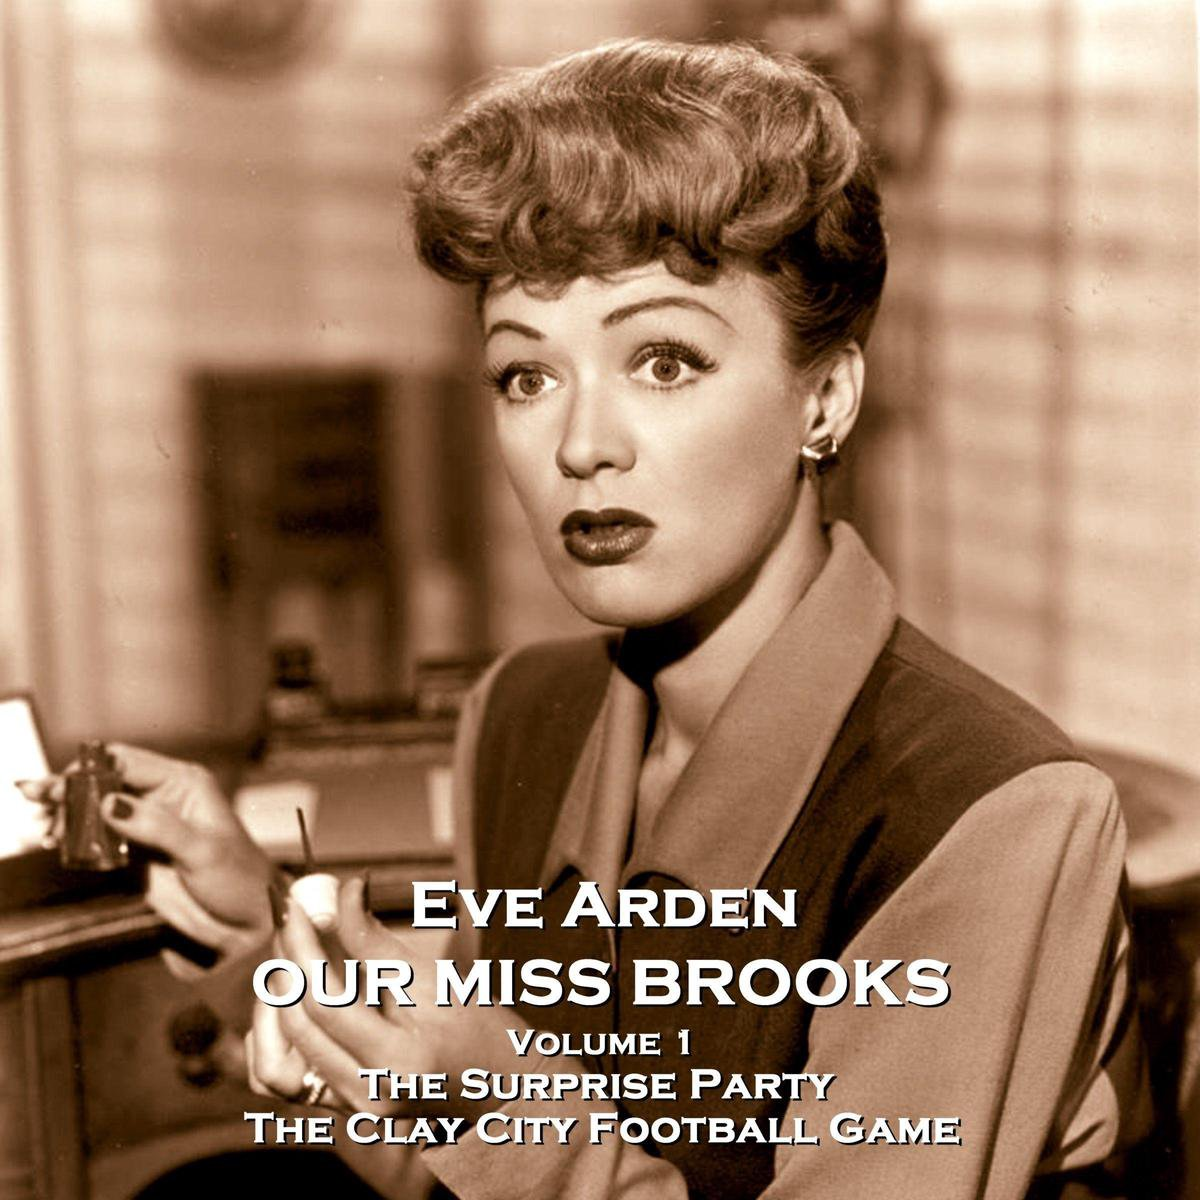 Our Miss Brooks - Volume 1 - The Surprise Party & The Clay City Football Game